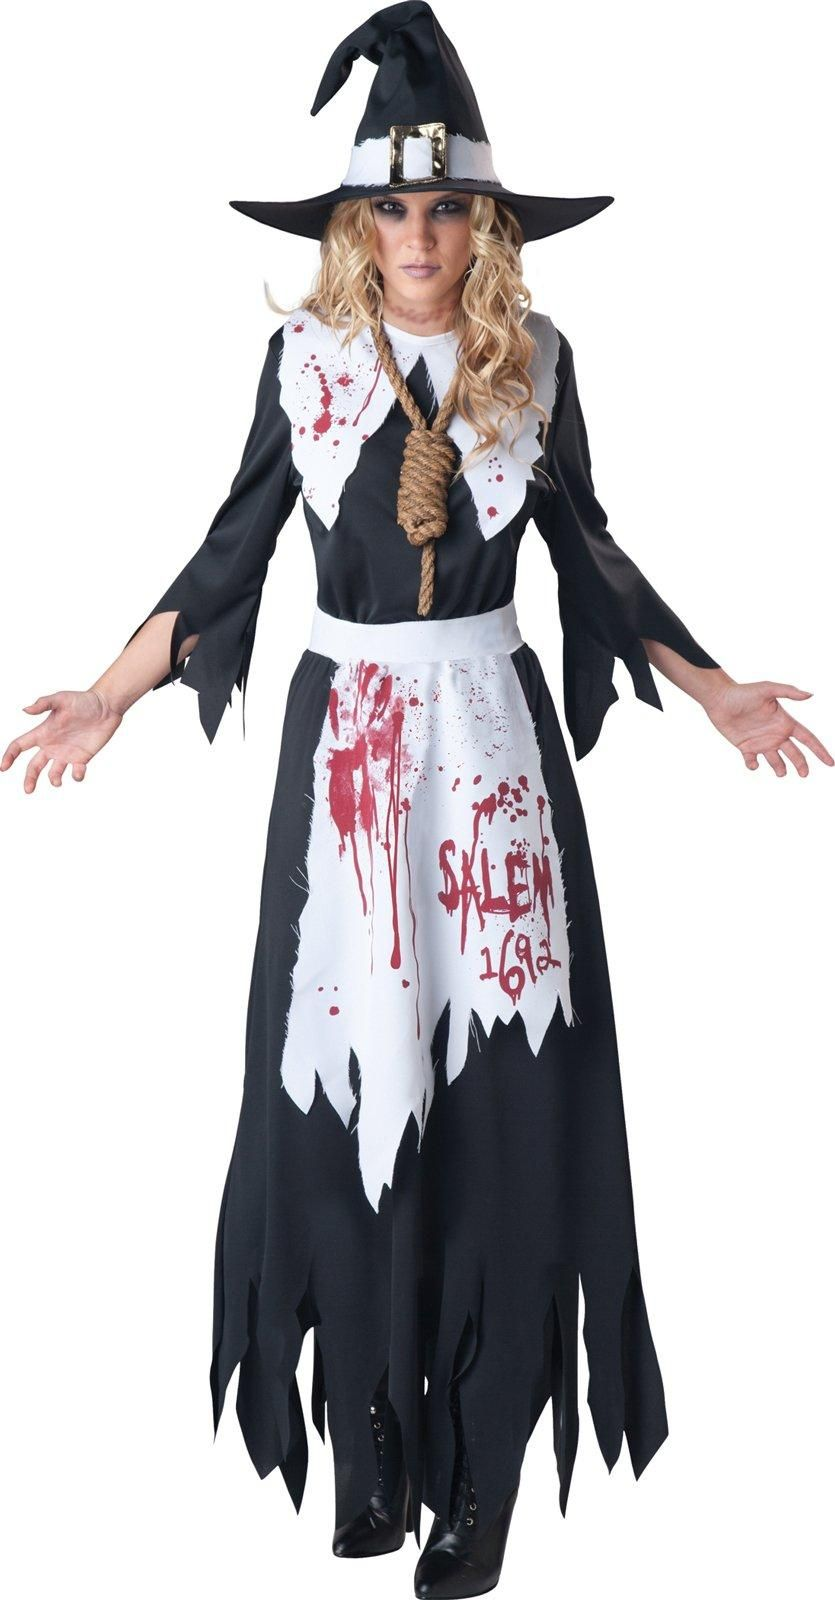 Salem Witch Adult Costume | Witches, Costumes and Holidays halloween